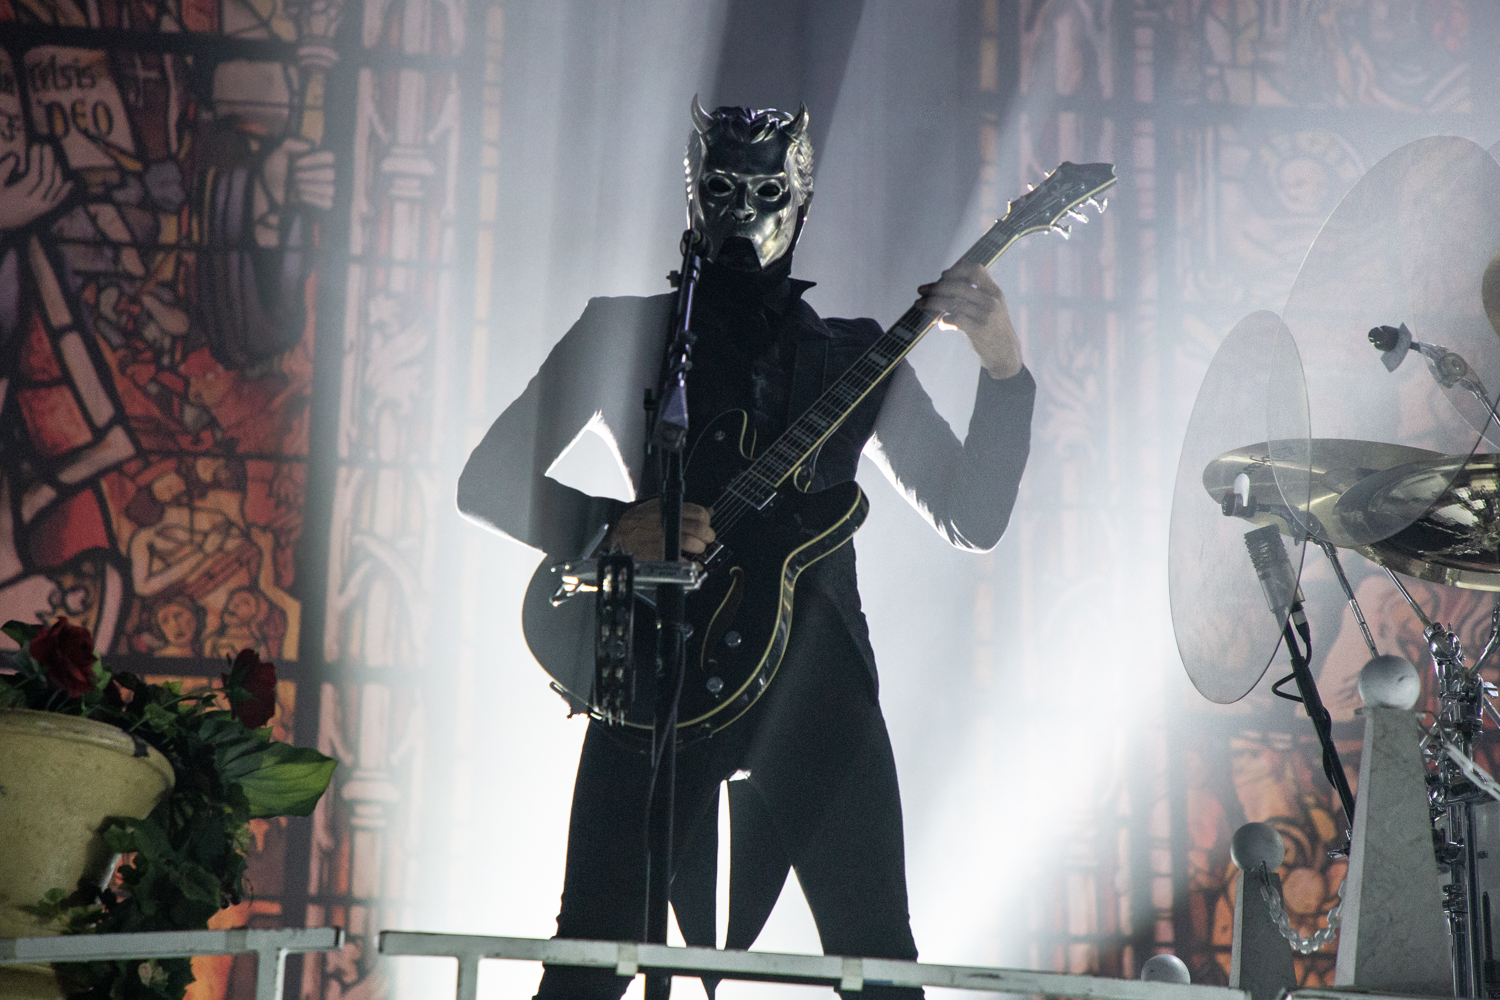 Ghost Barclays Center 2018 18 Live Review: Ghost Turn Brooklyns Barclays Center Into a House of Worship (12/15)